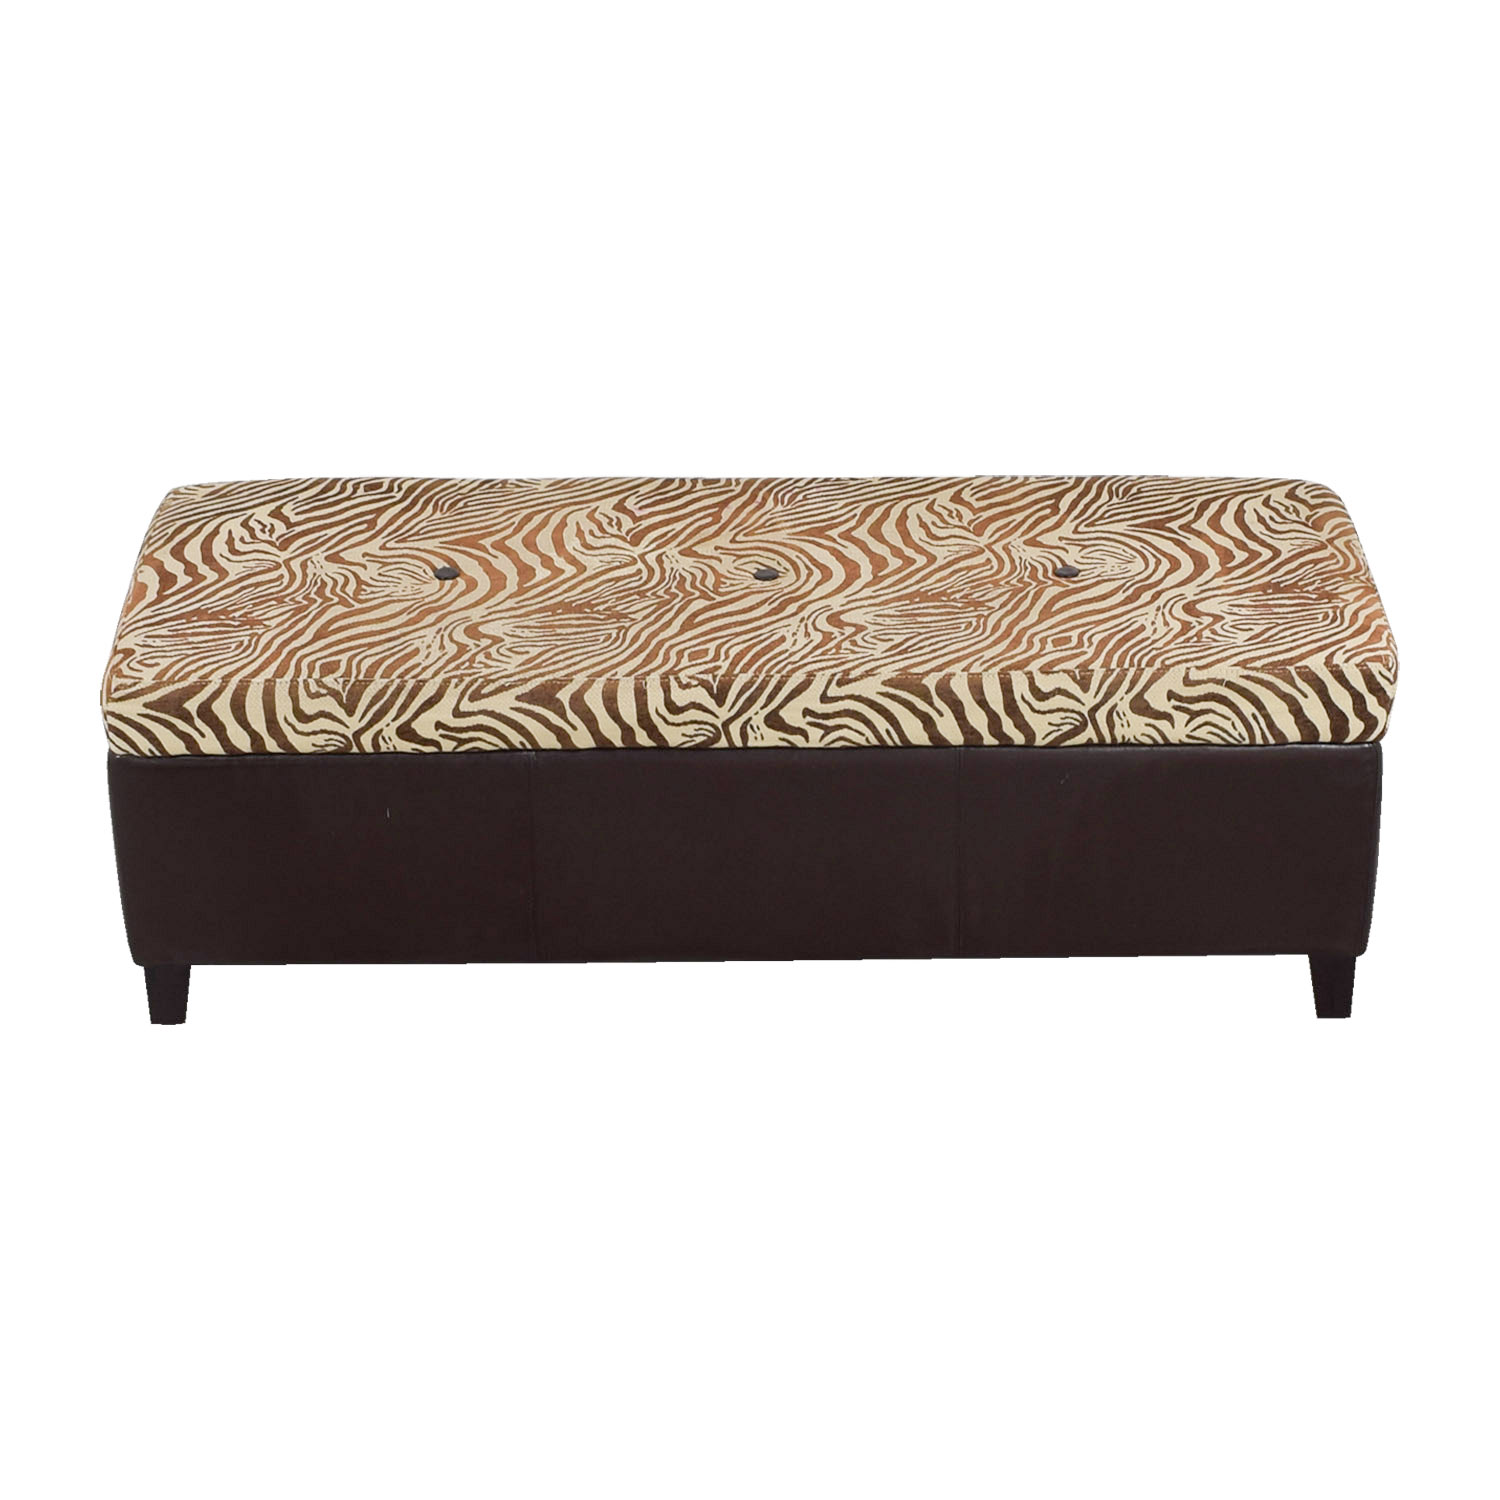 buy Pier 1 Imports Brown Zebra Storage Trunk Pier 1 Imports Chairs